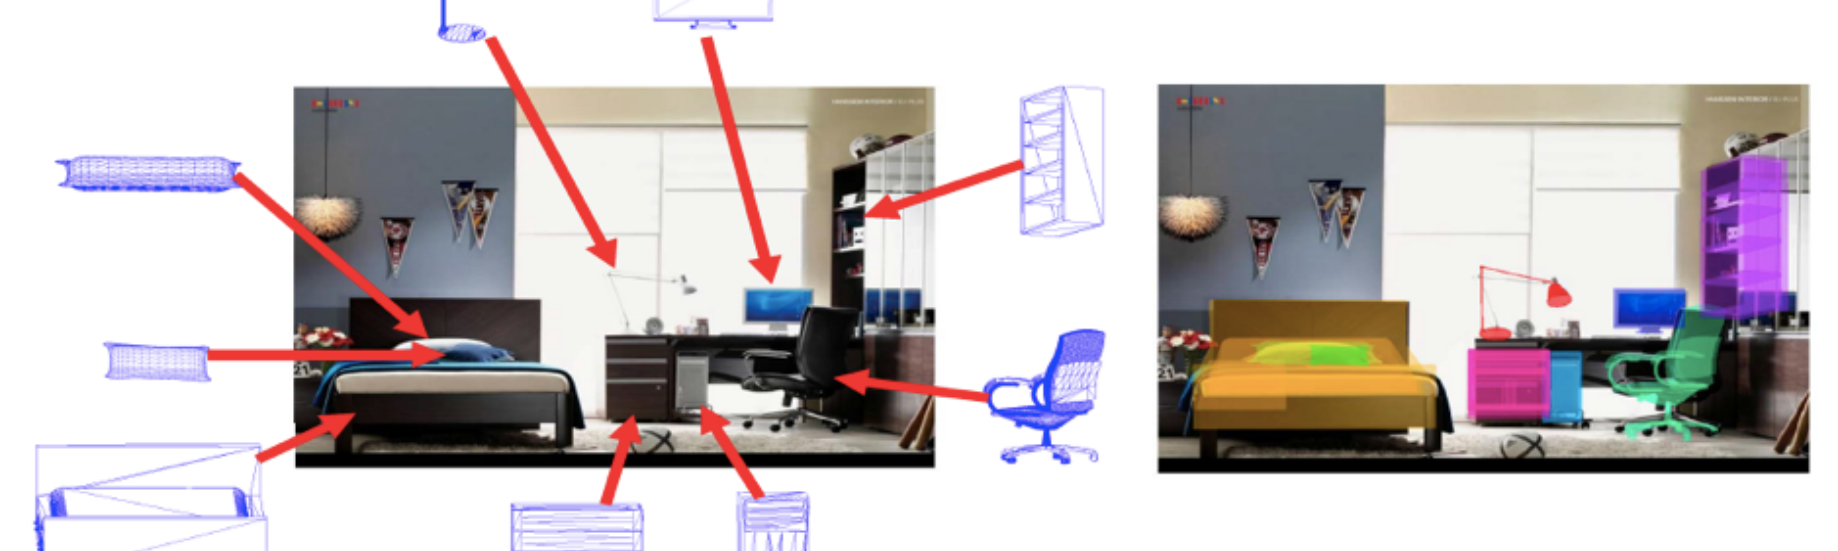 New Datasets for 3D Object Recognition - Neurohive - CV papers - Medium